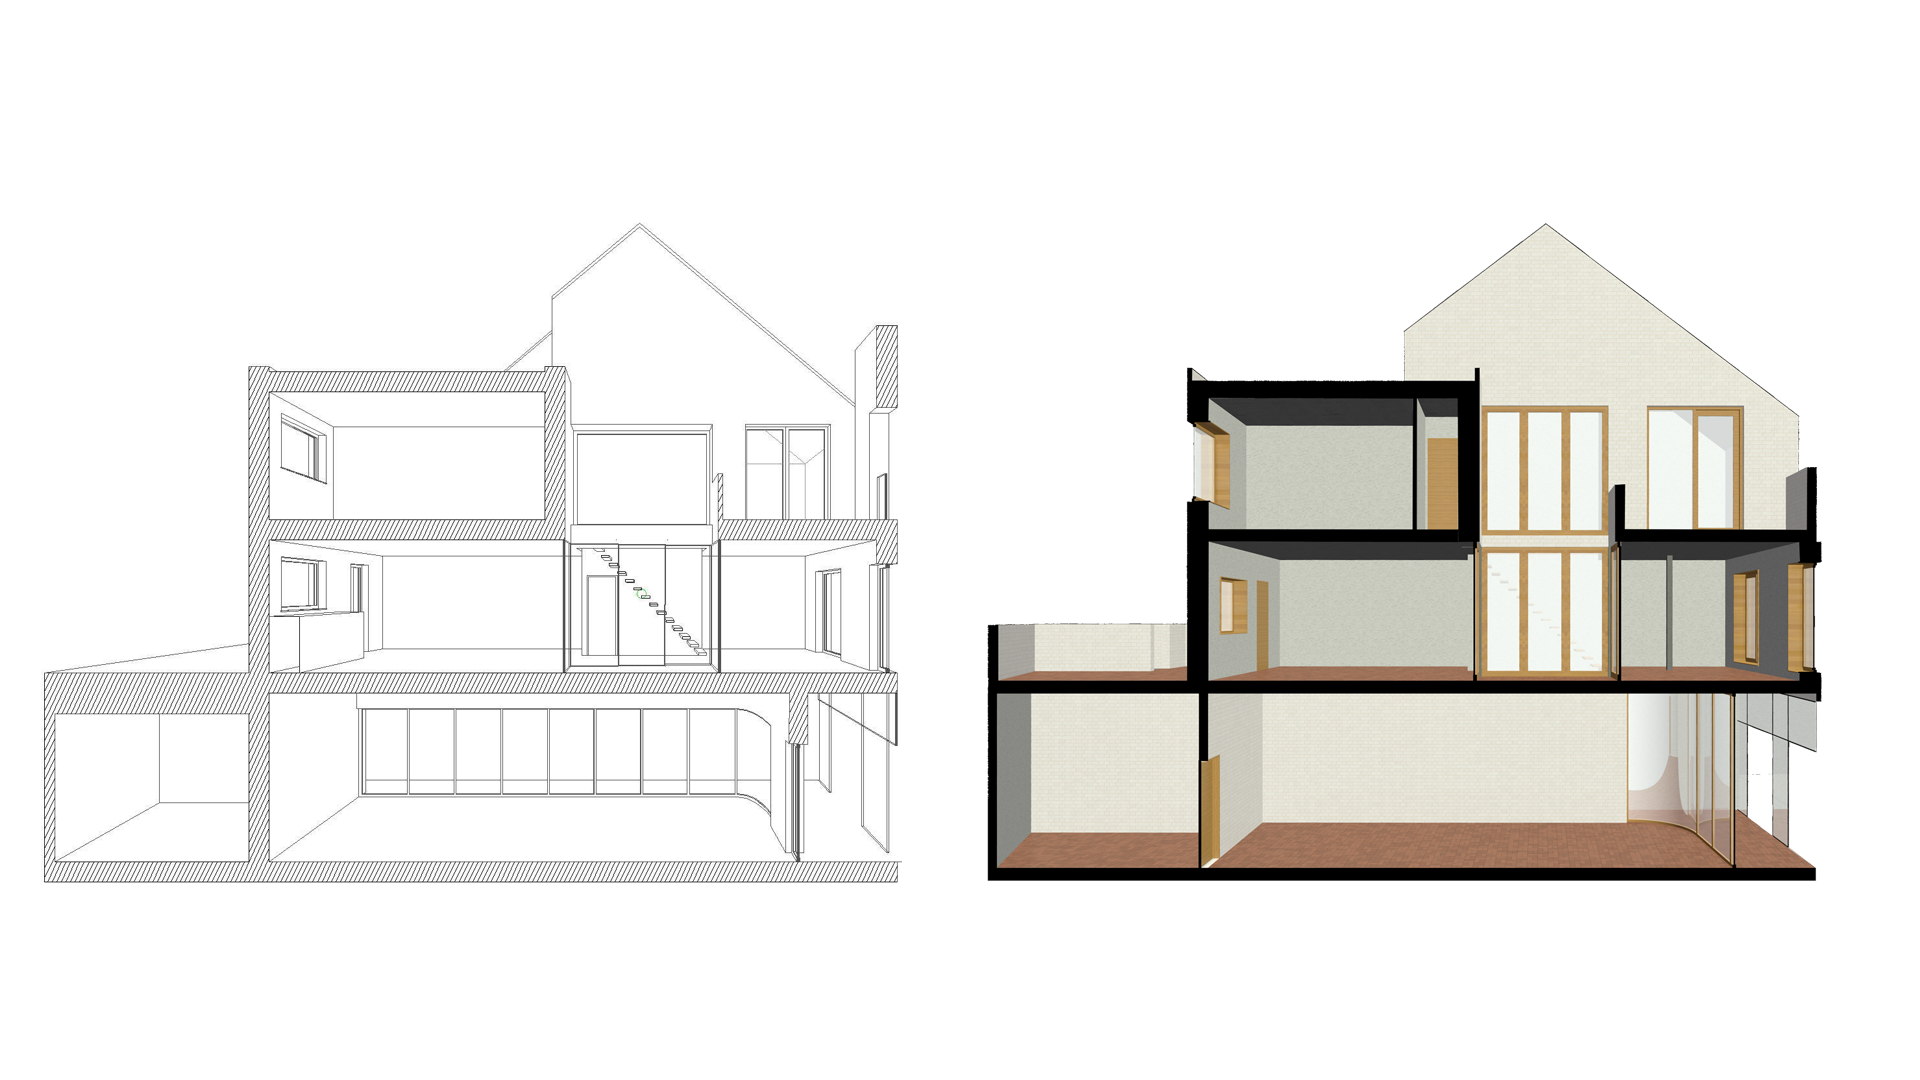 section vie house drafting student gent ghent